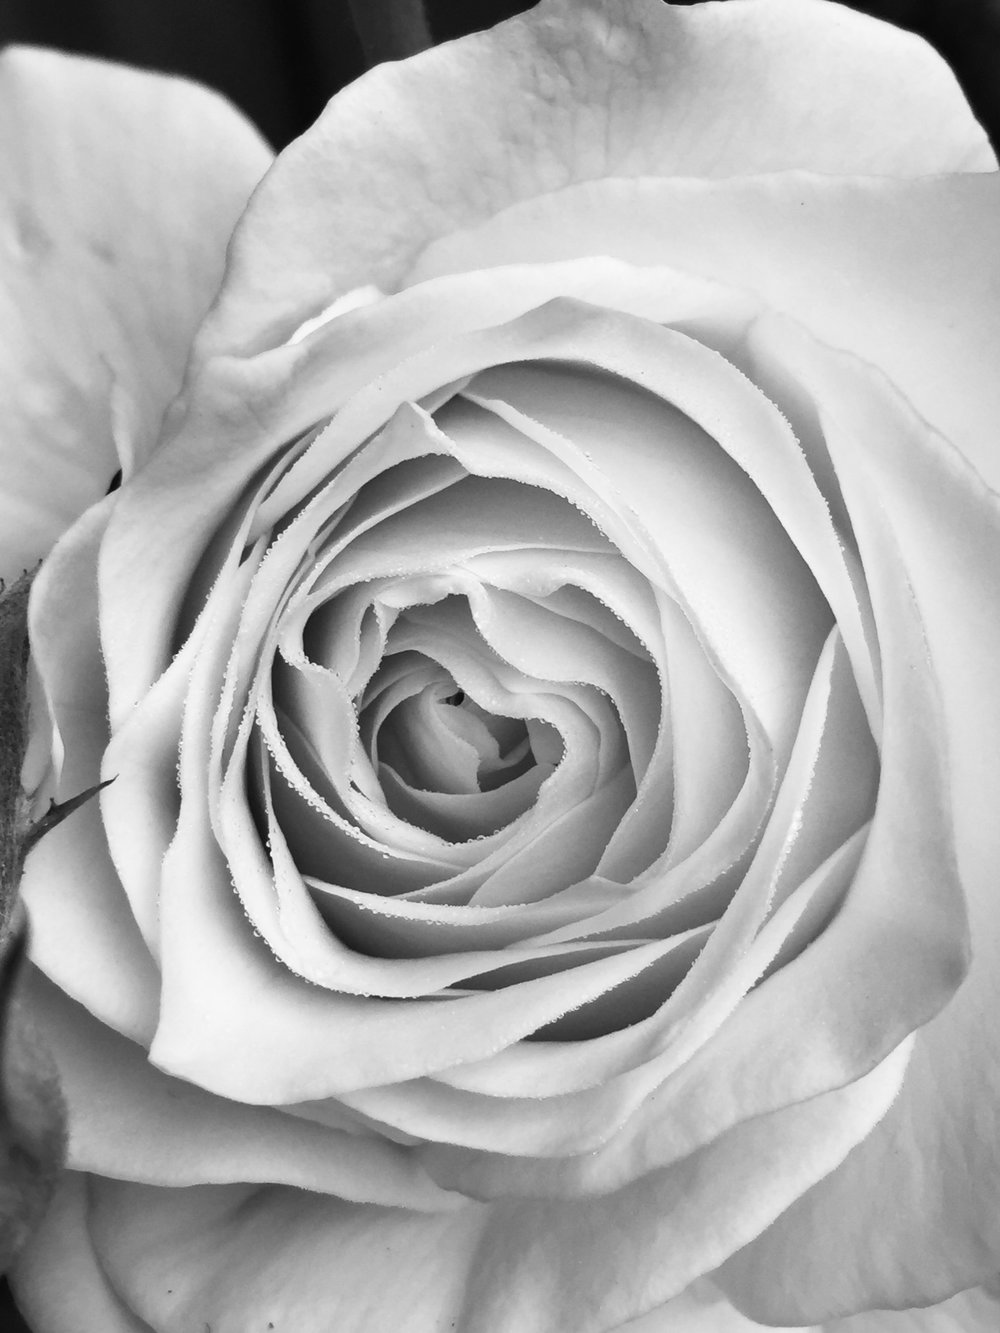 Black and white of a rose up close